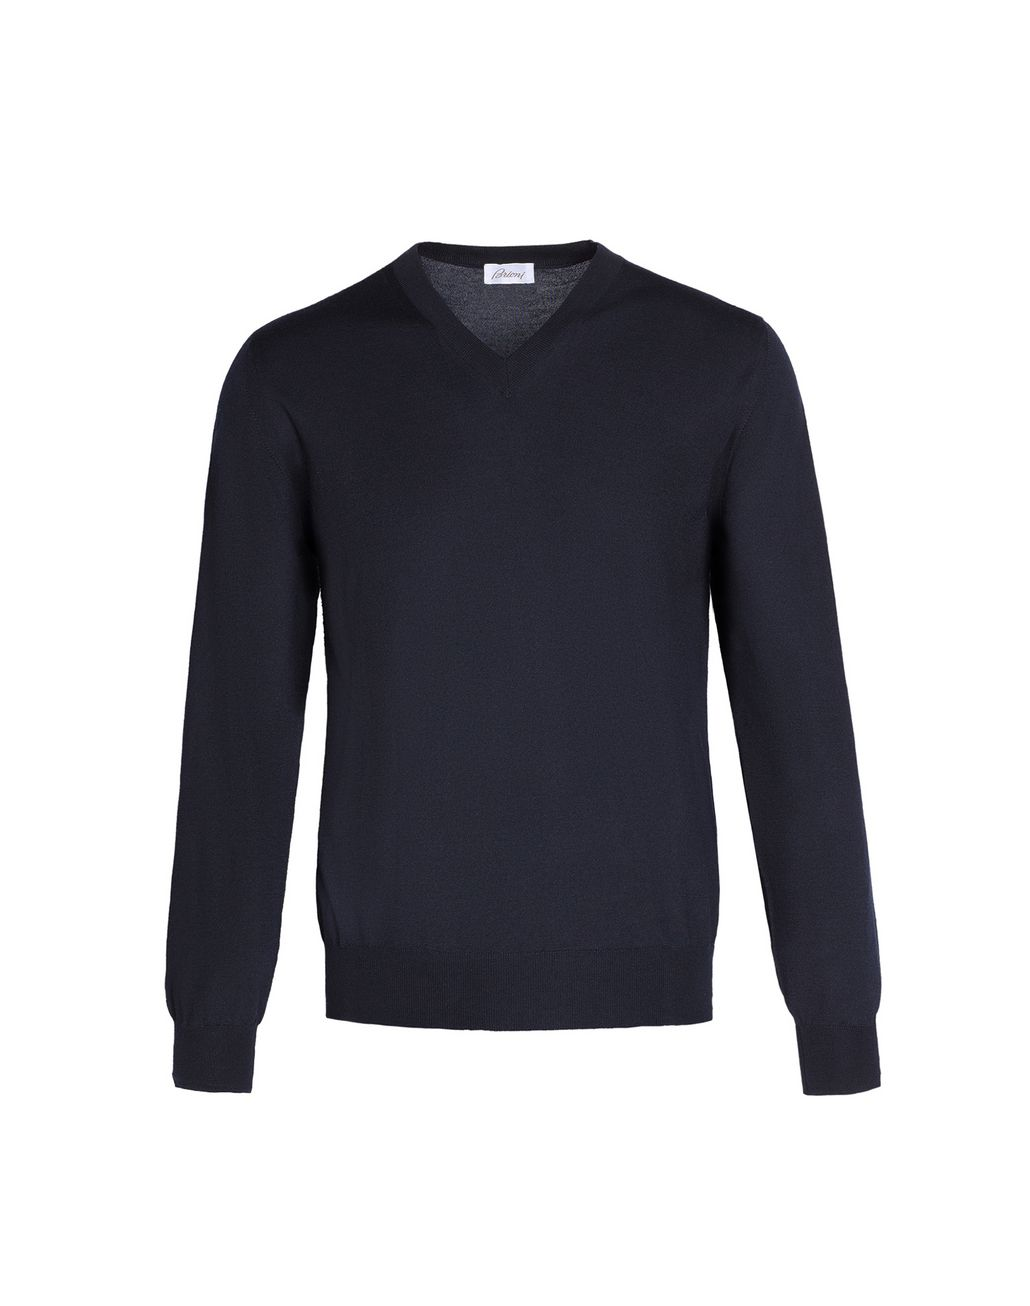 BRIONI 'Essential' Navy Blue V-Neck Sweater Knitwear [*** pickupInStoreShippingNotGuaranteed_info ***] f